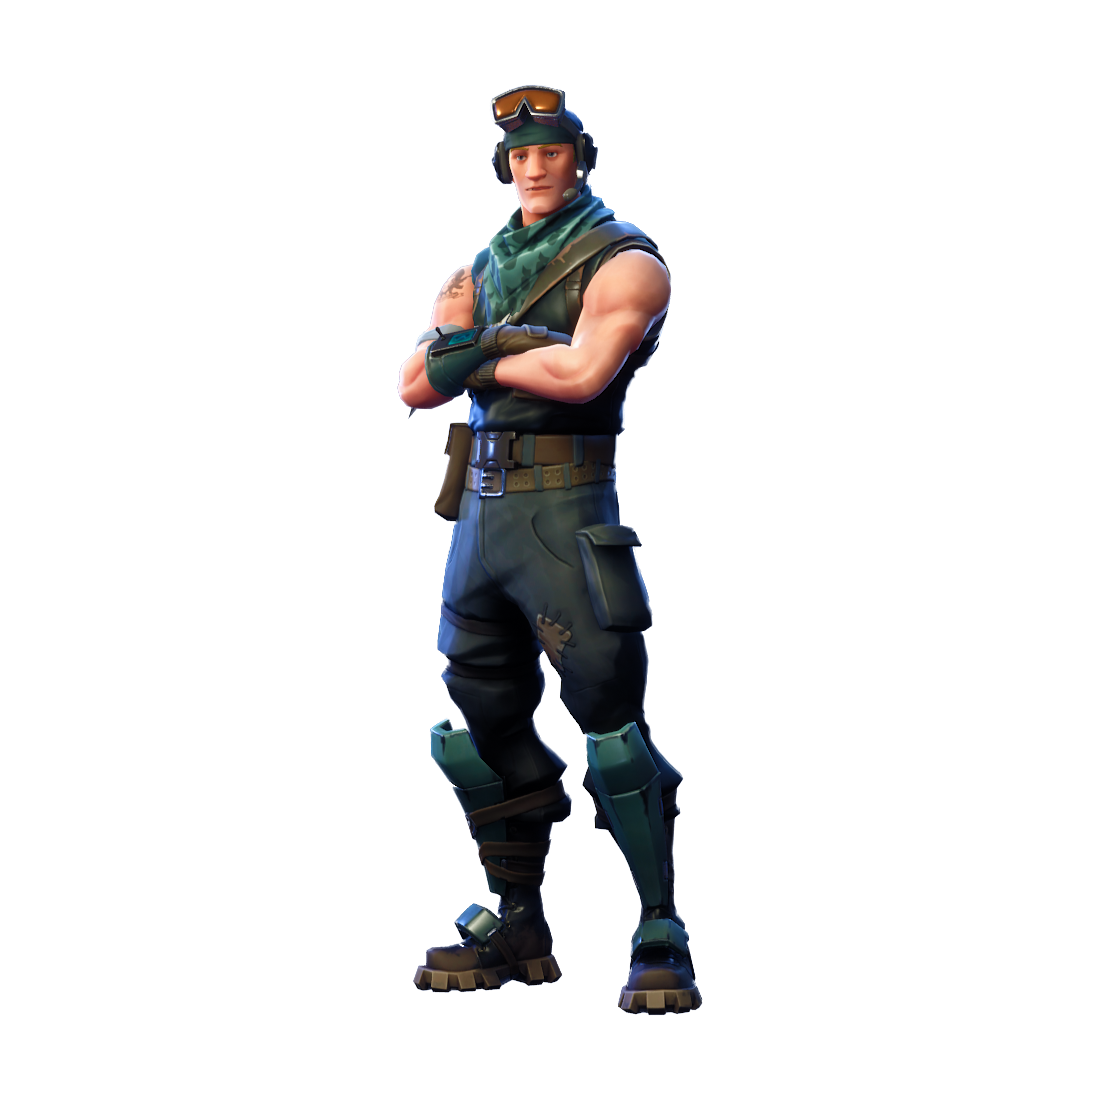 Fortnite Skin Recon Scout